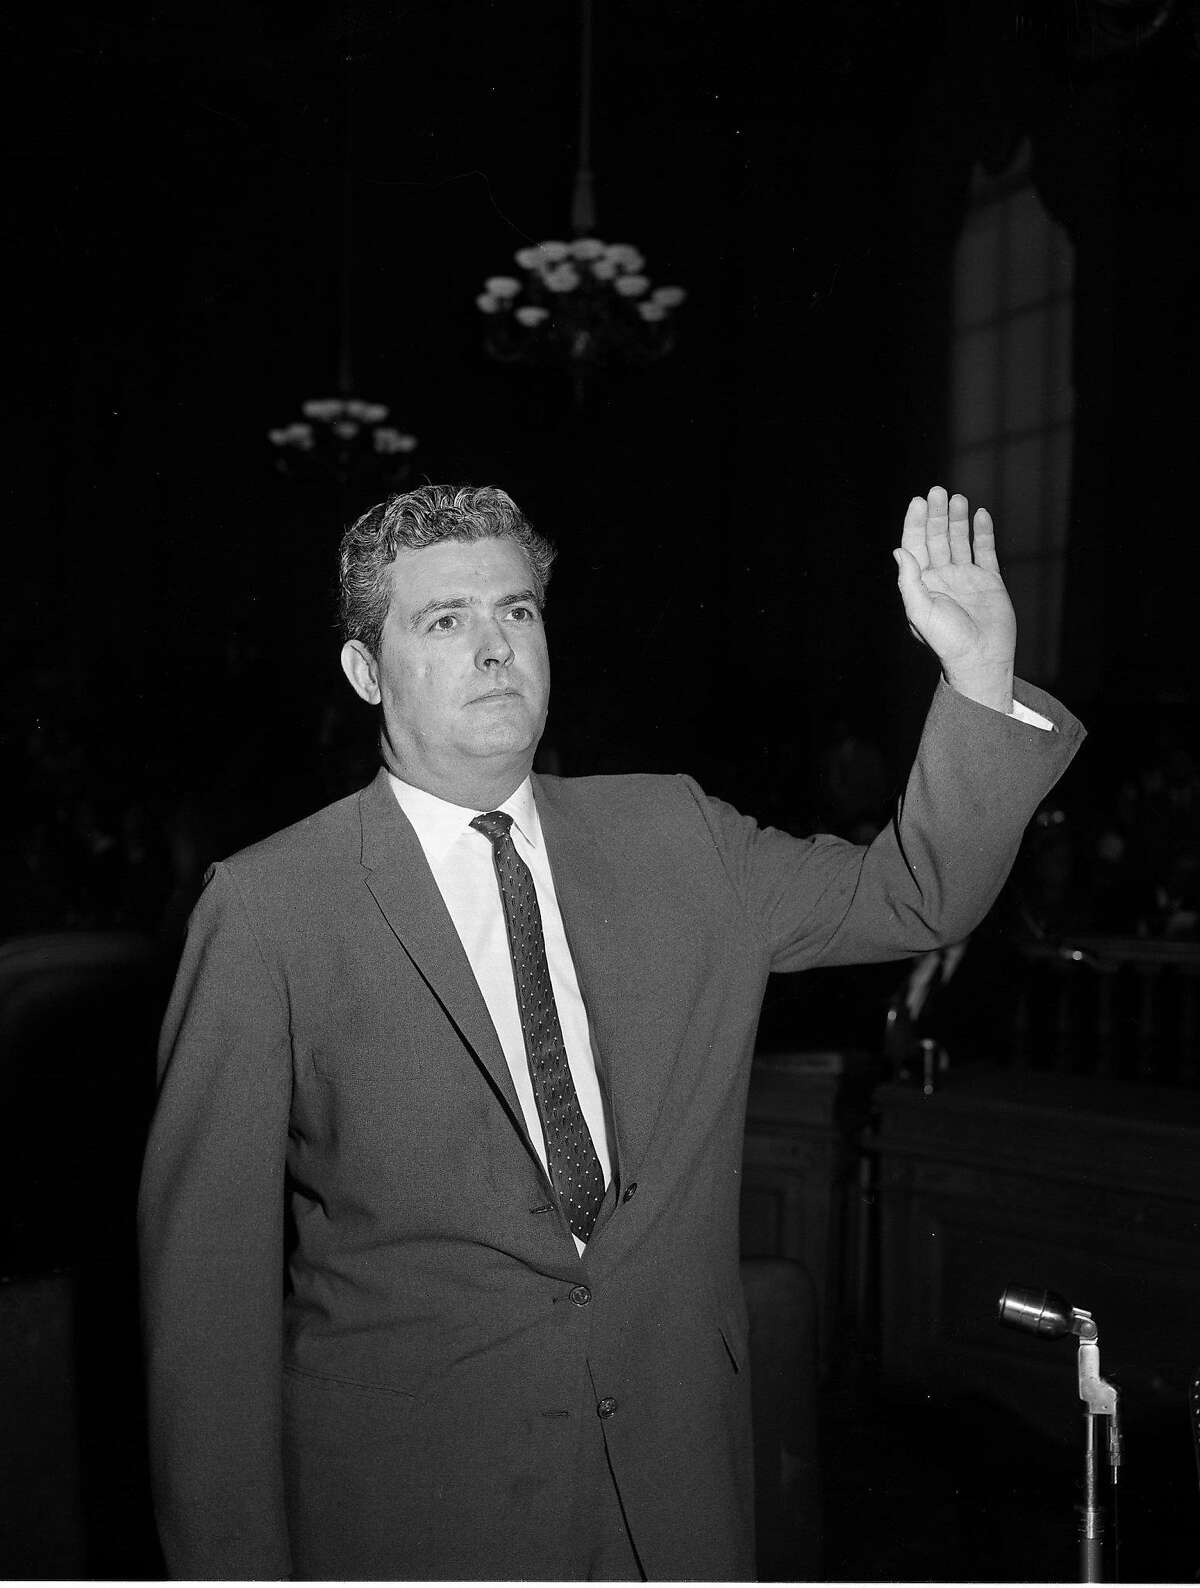 William A. Wheeler, Investigator for the House UnAmerican Activities Committee, here to testify, May 14, 1960